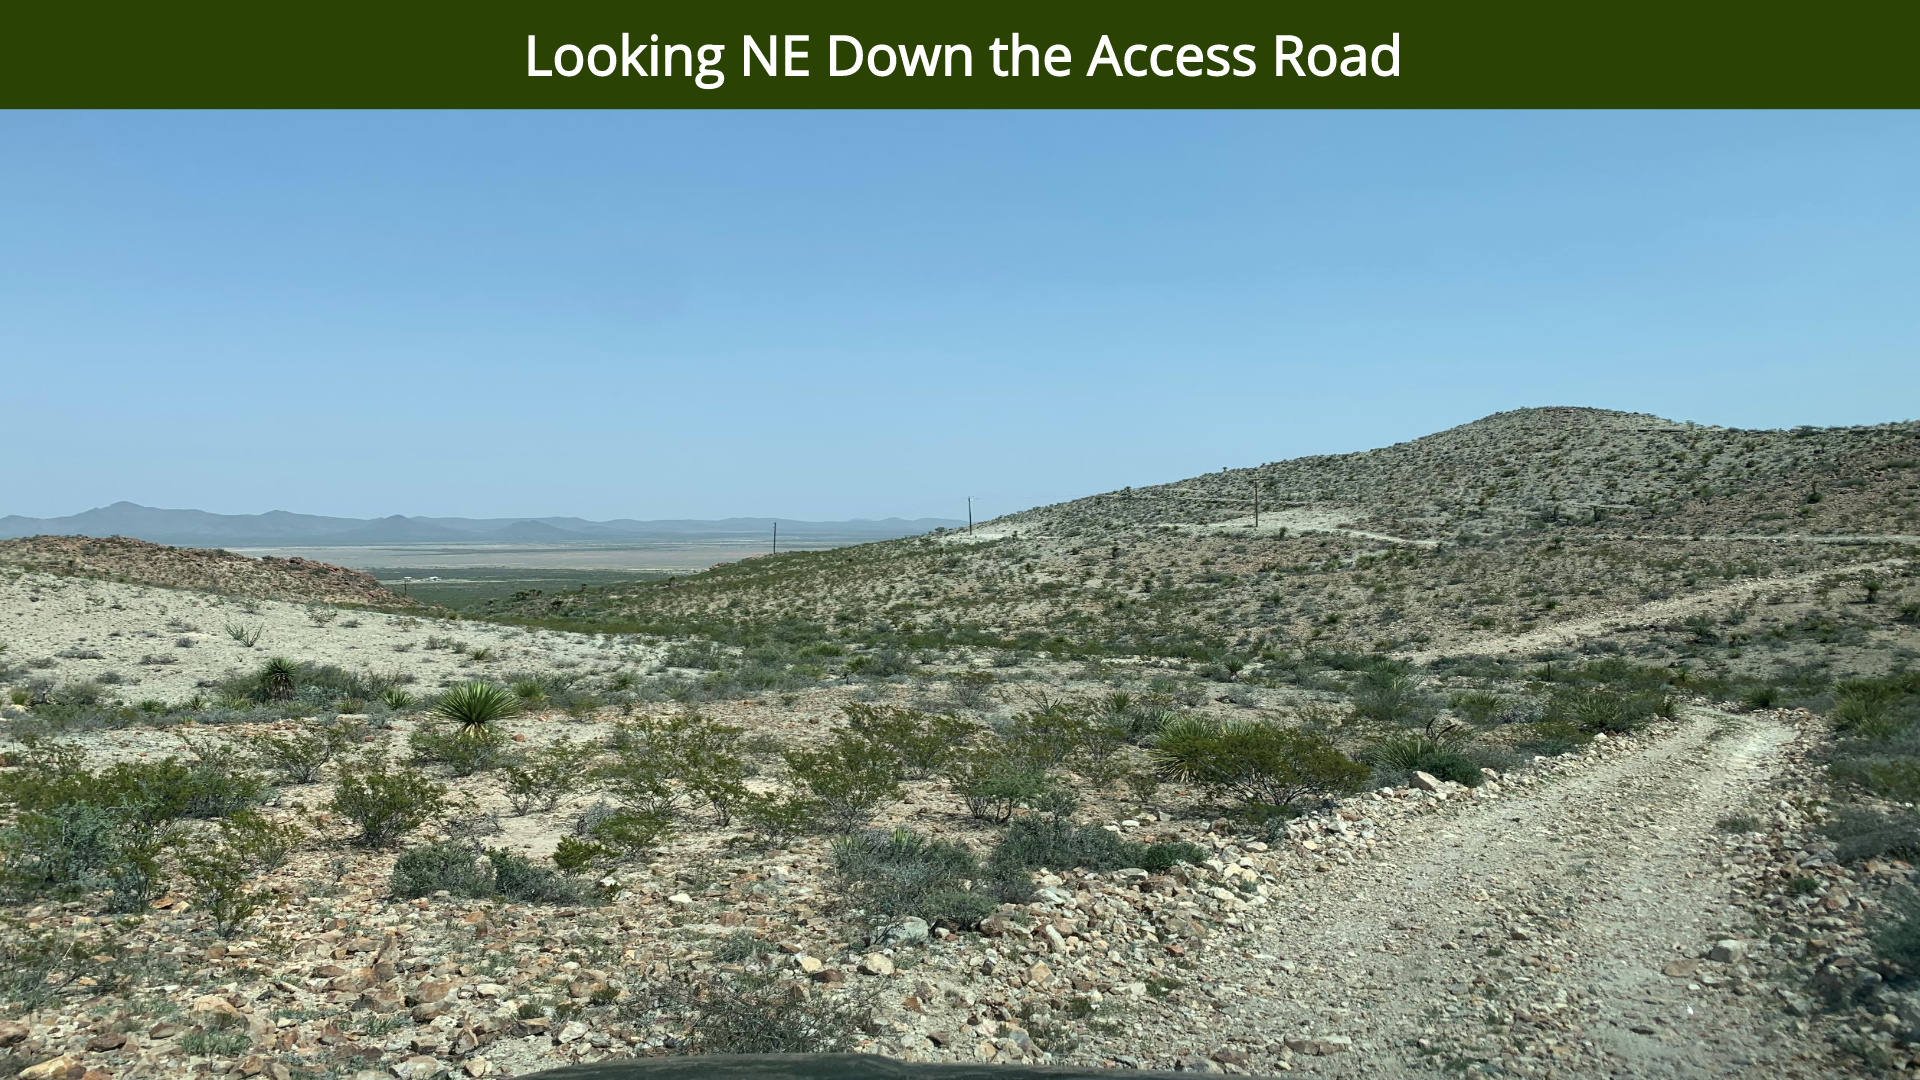 Looking NE Down the Access Road